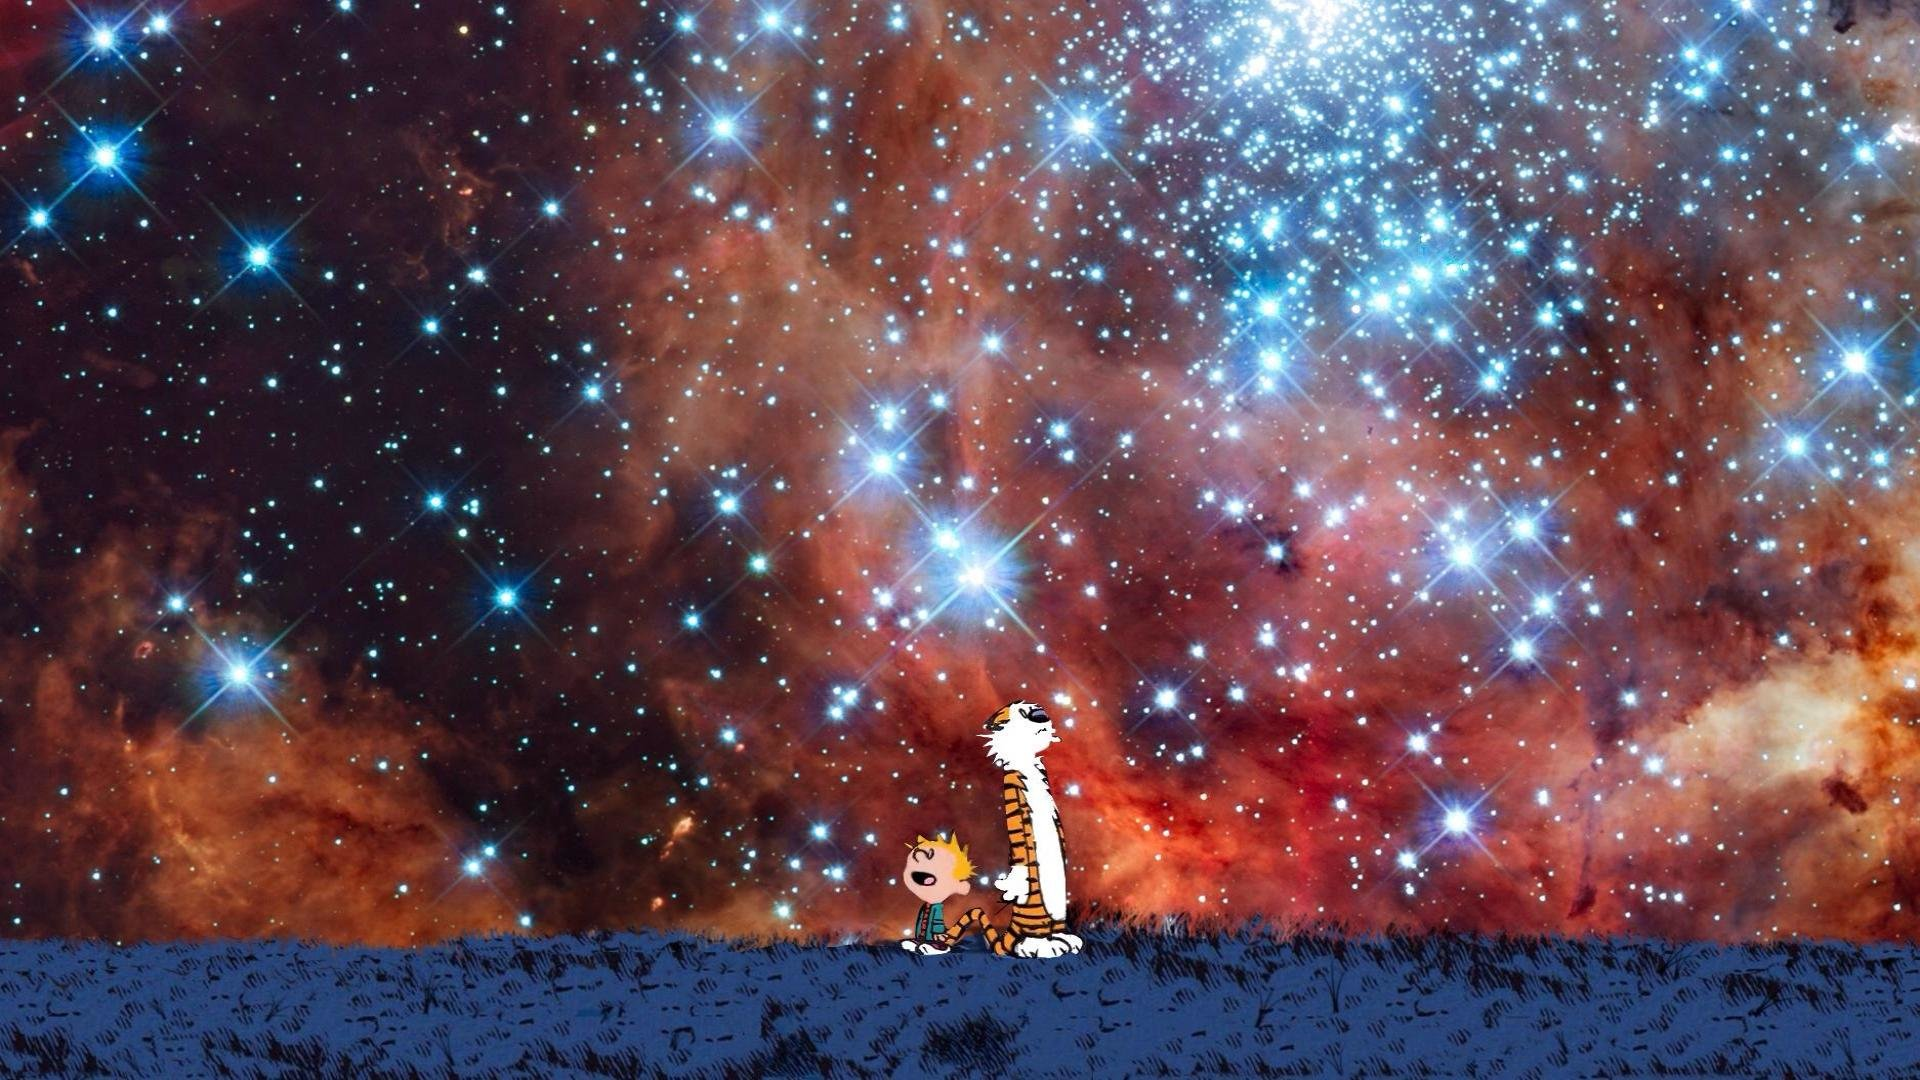 Free Calvin And Hobbes High Quality Wallpaper Id 211469 For Full Hd Pc